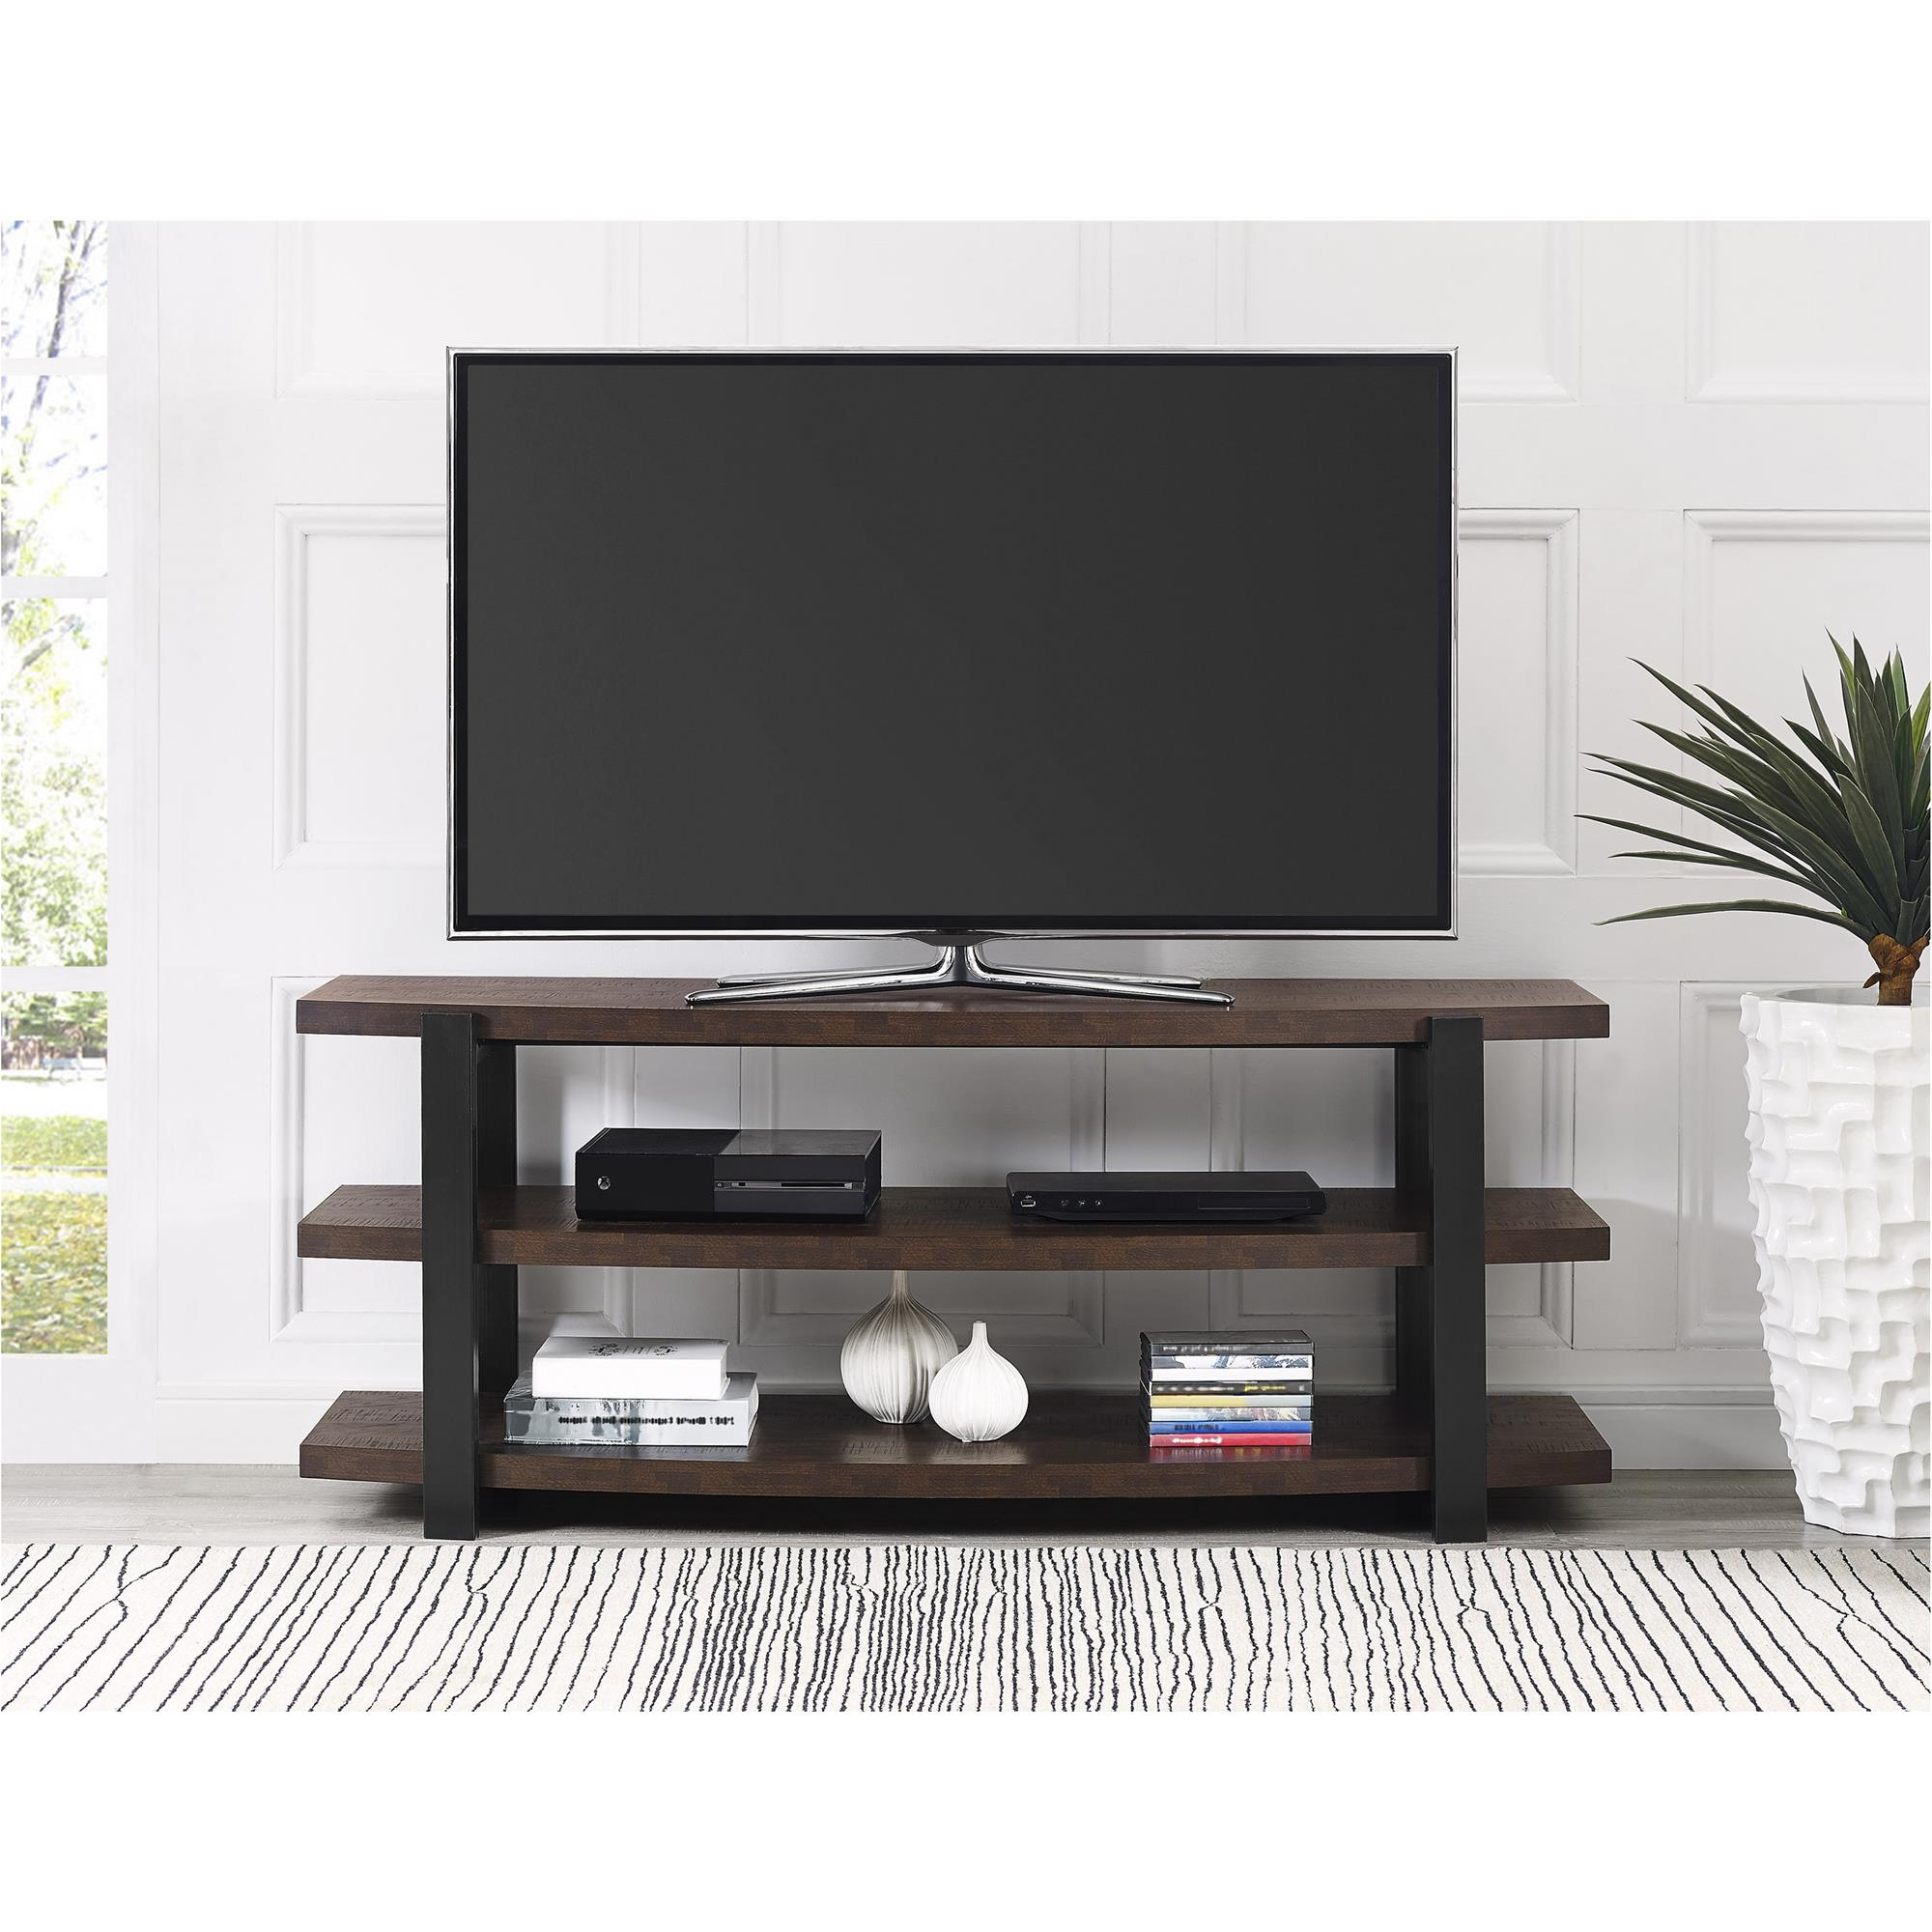 """Kinsella Tv Stands For Tvs Up To 70"""" With Regard To Recent Ameriwood Home Garon Tv Stand For Tvs Up To 70"""", Multiple (View 8 of 25)"""